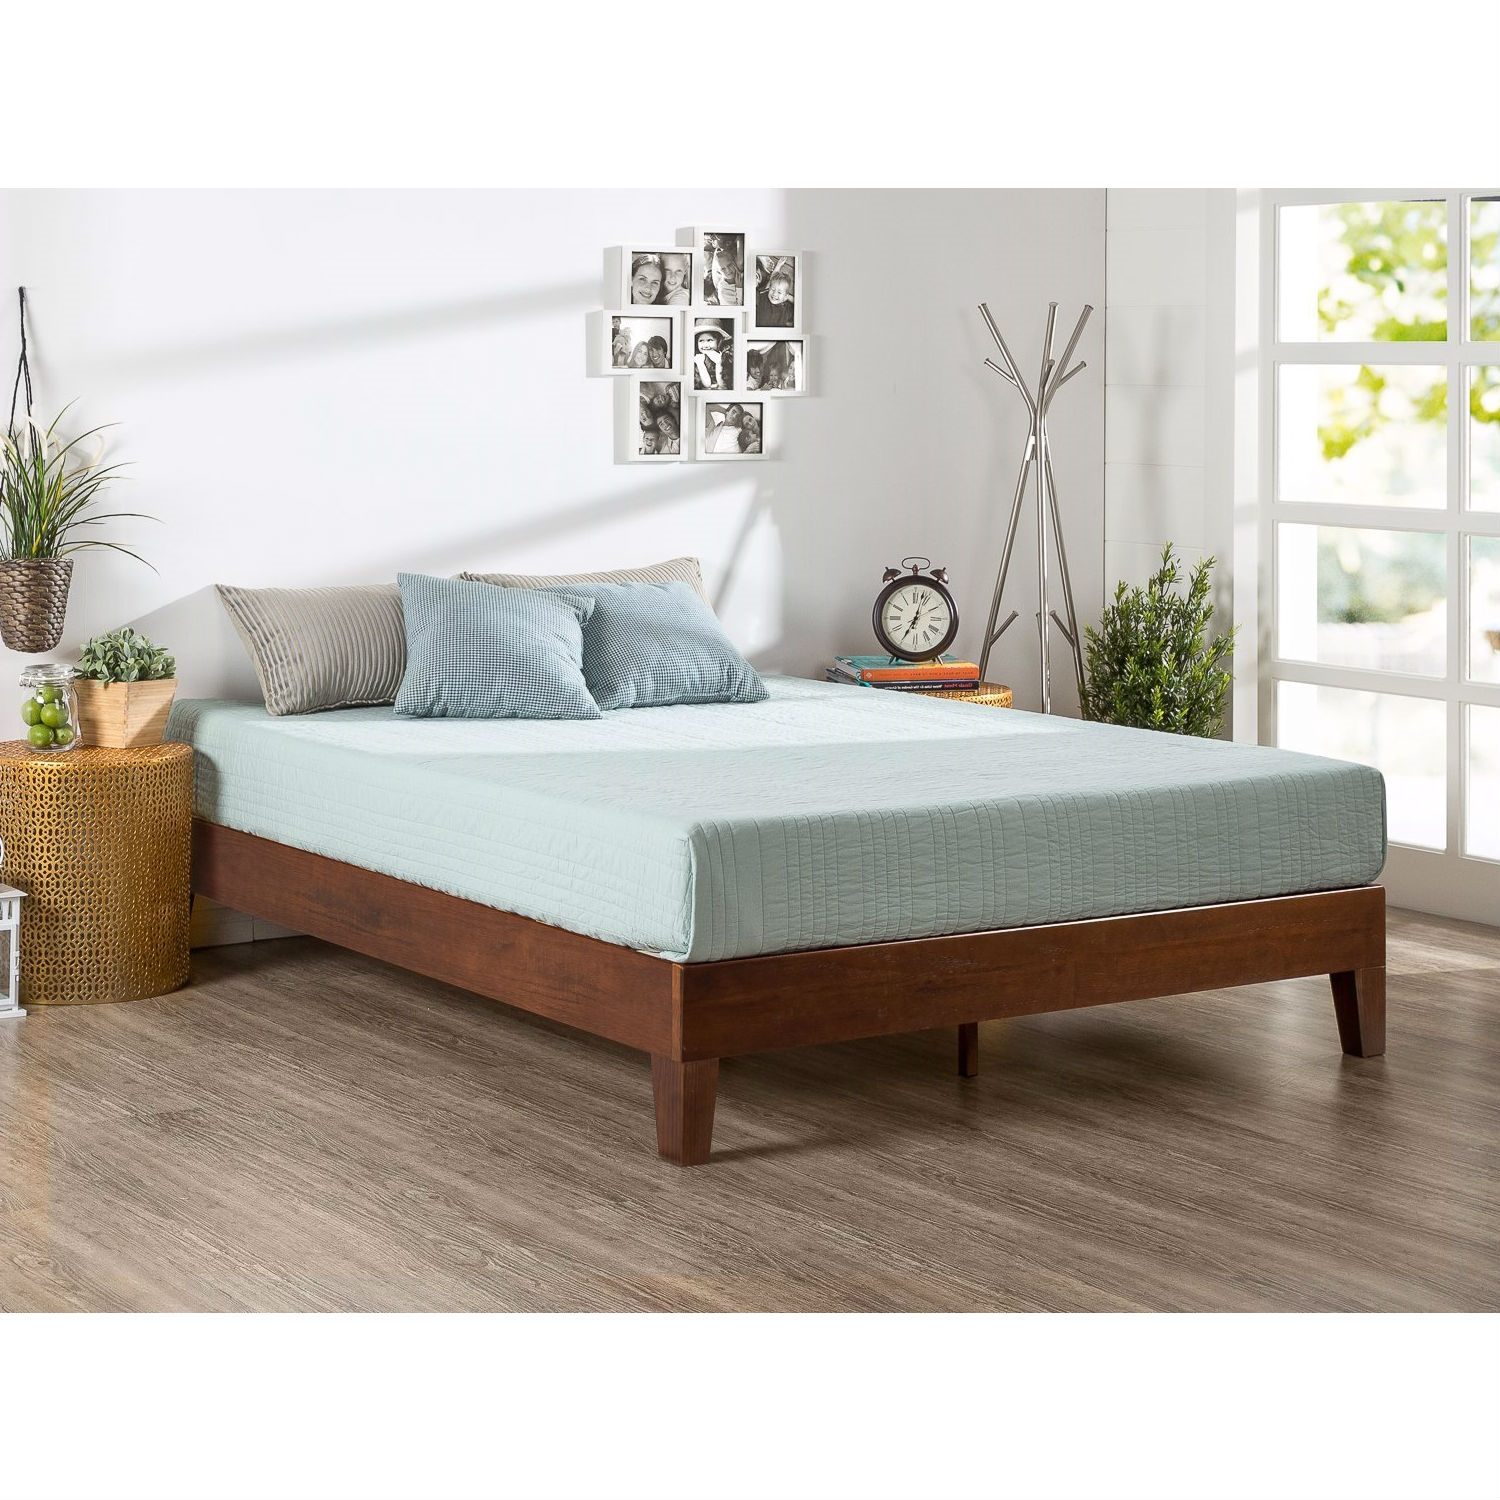 King size Low Profile Solid Wood Platform Bed Frame in Espresso